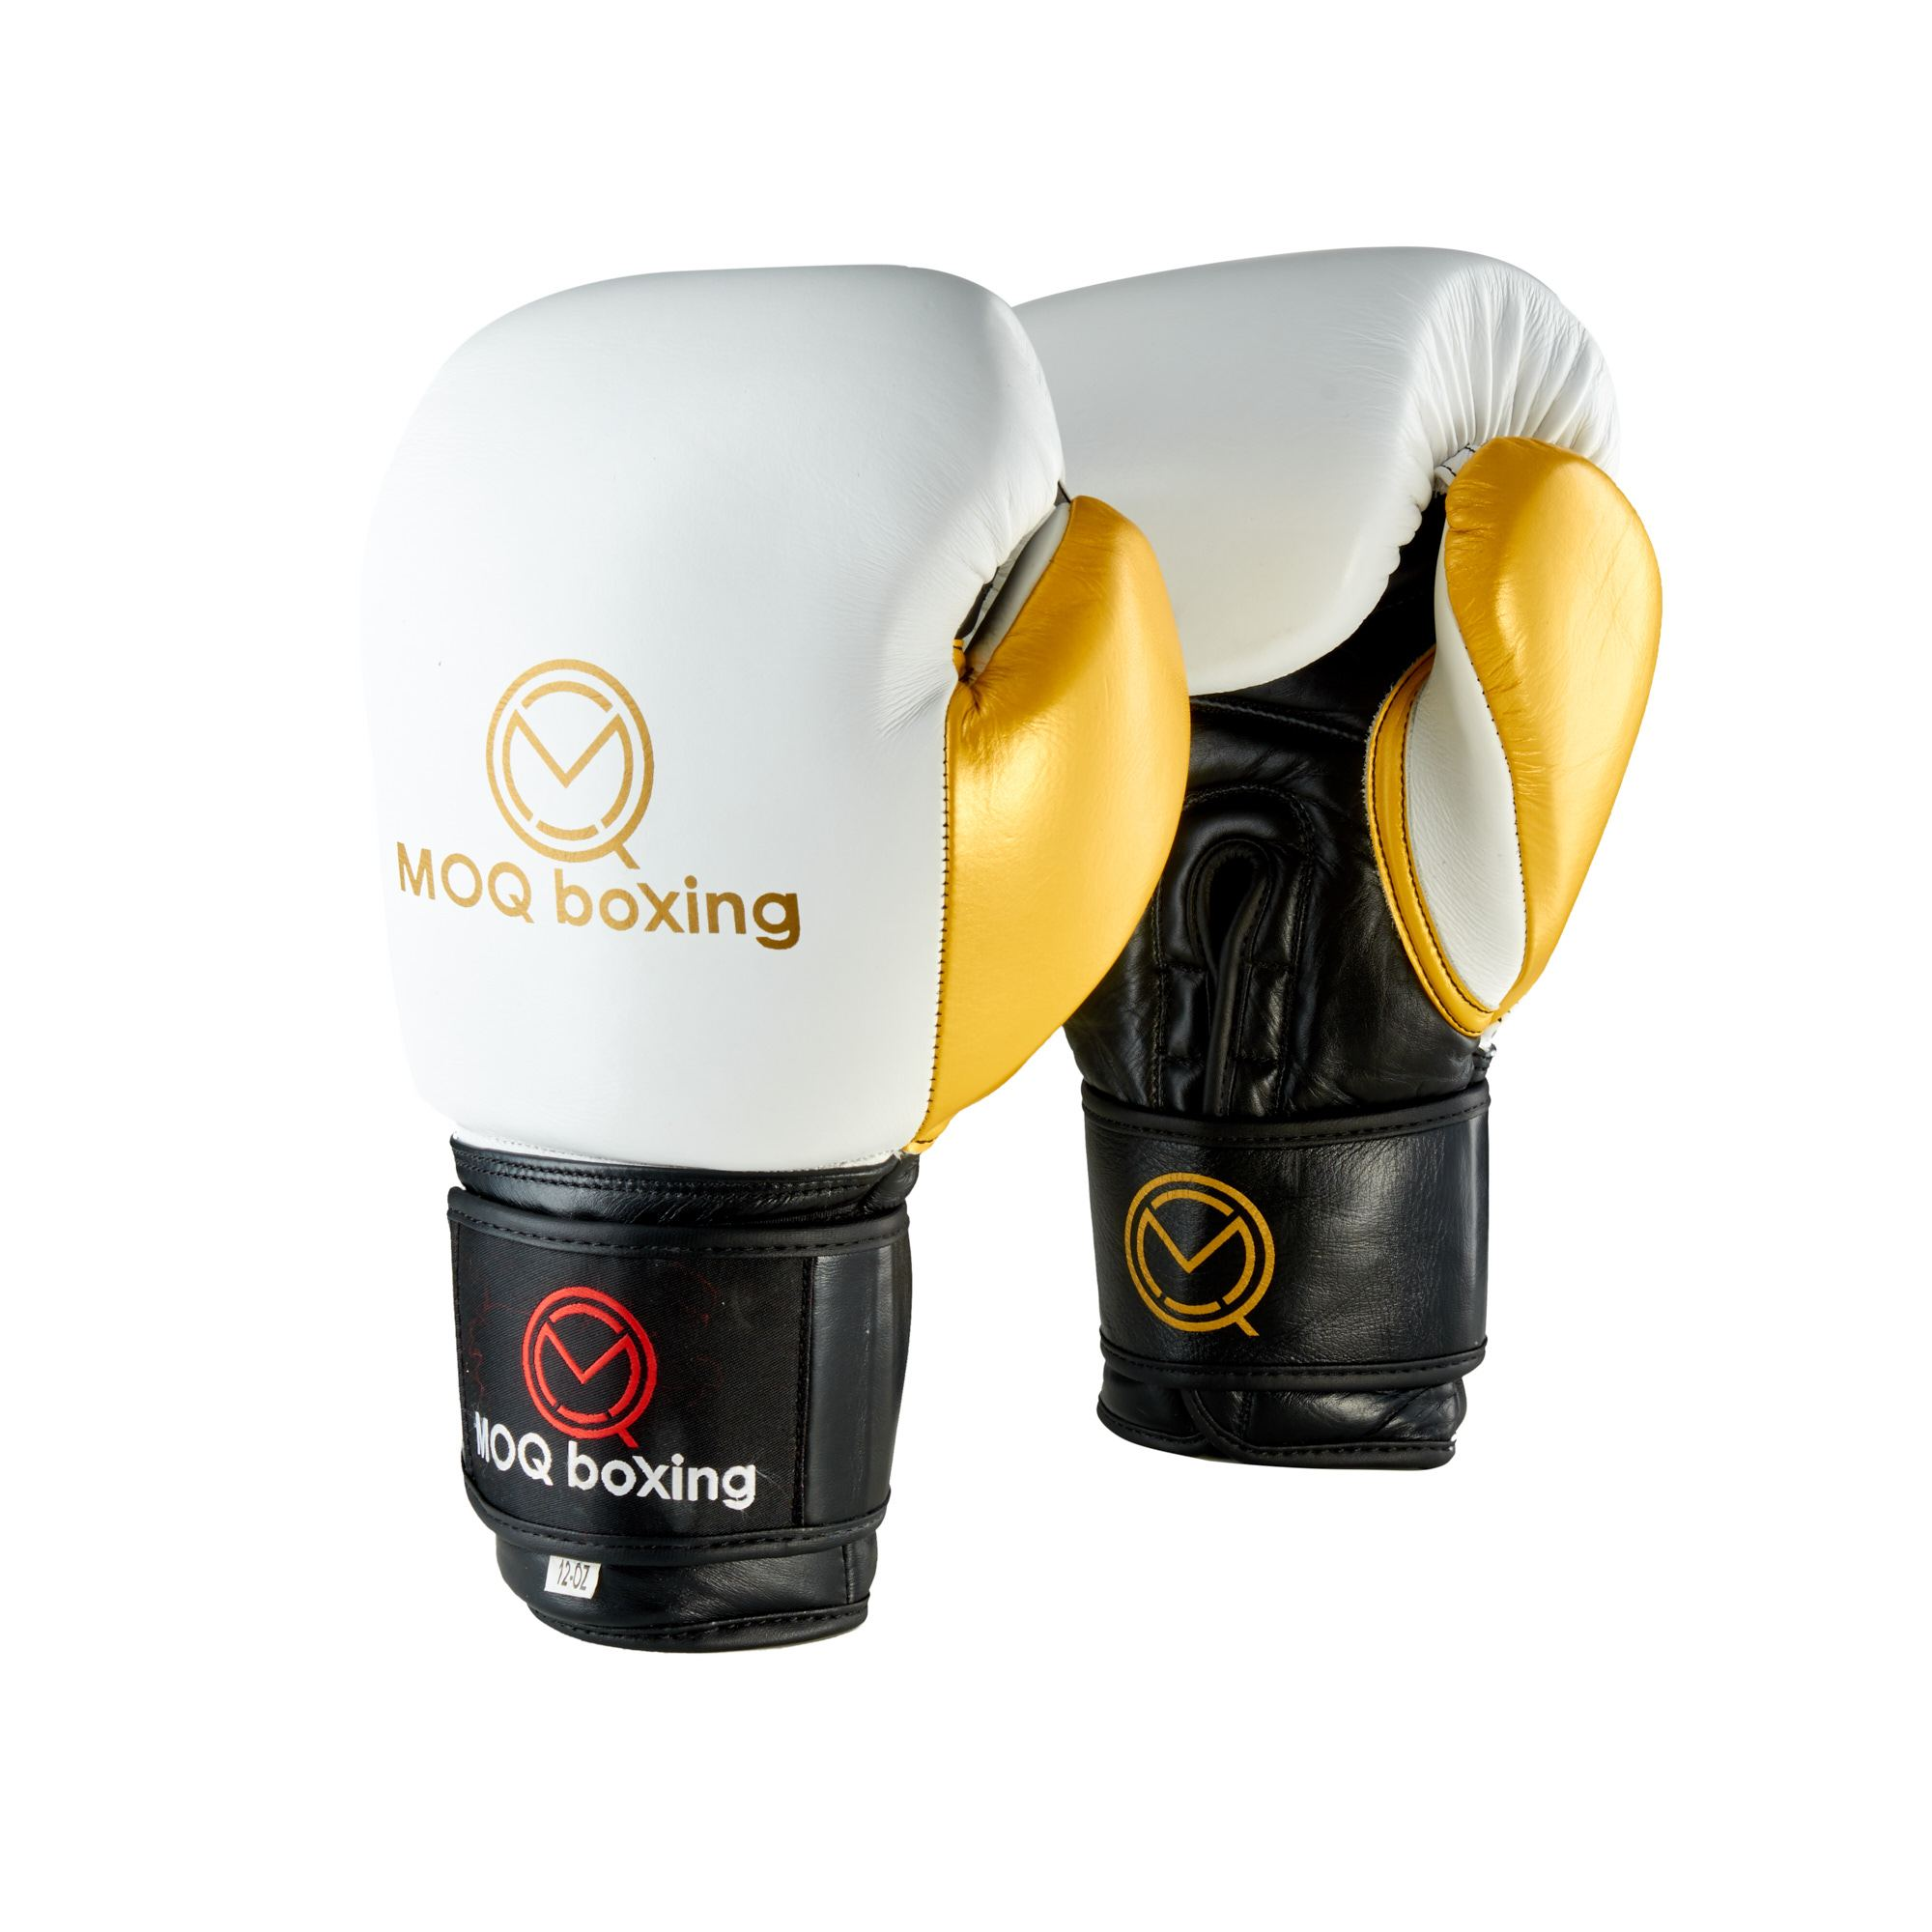 MOQ X1 Black, White & Gold Velcro Boxing Gloves - MOQ boxing